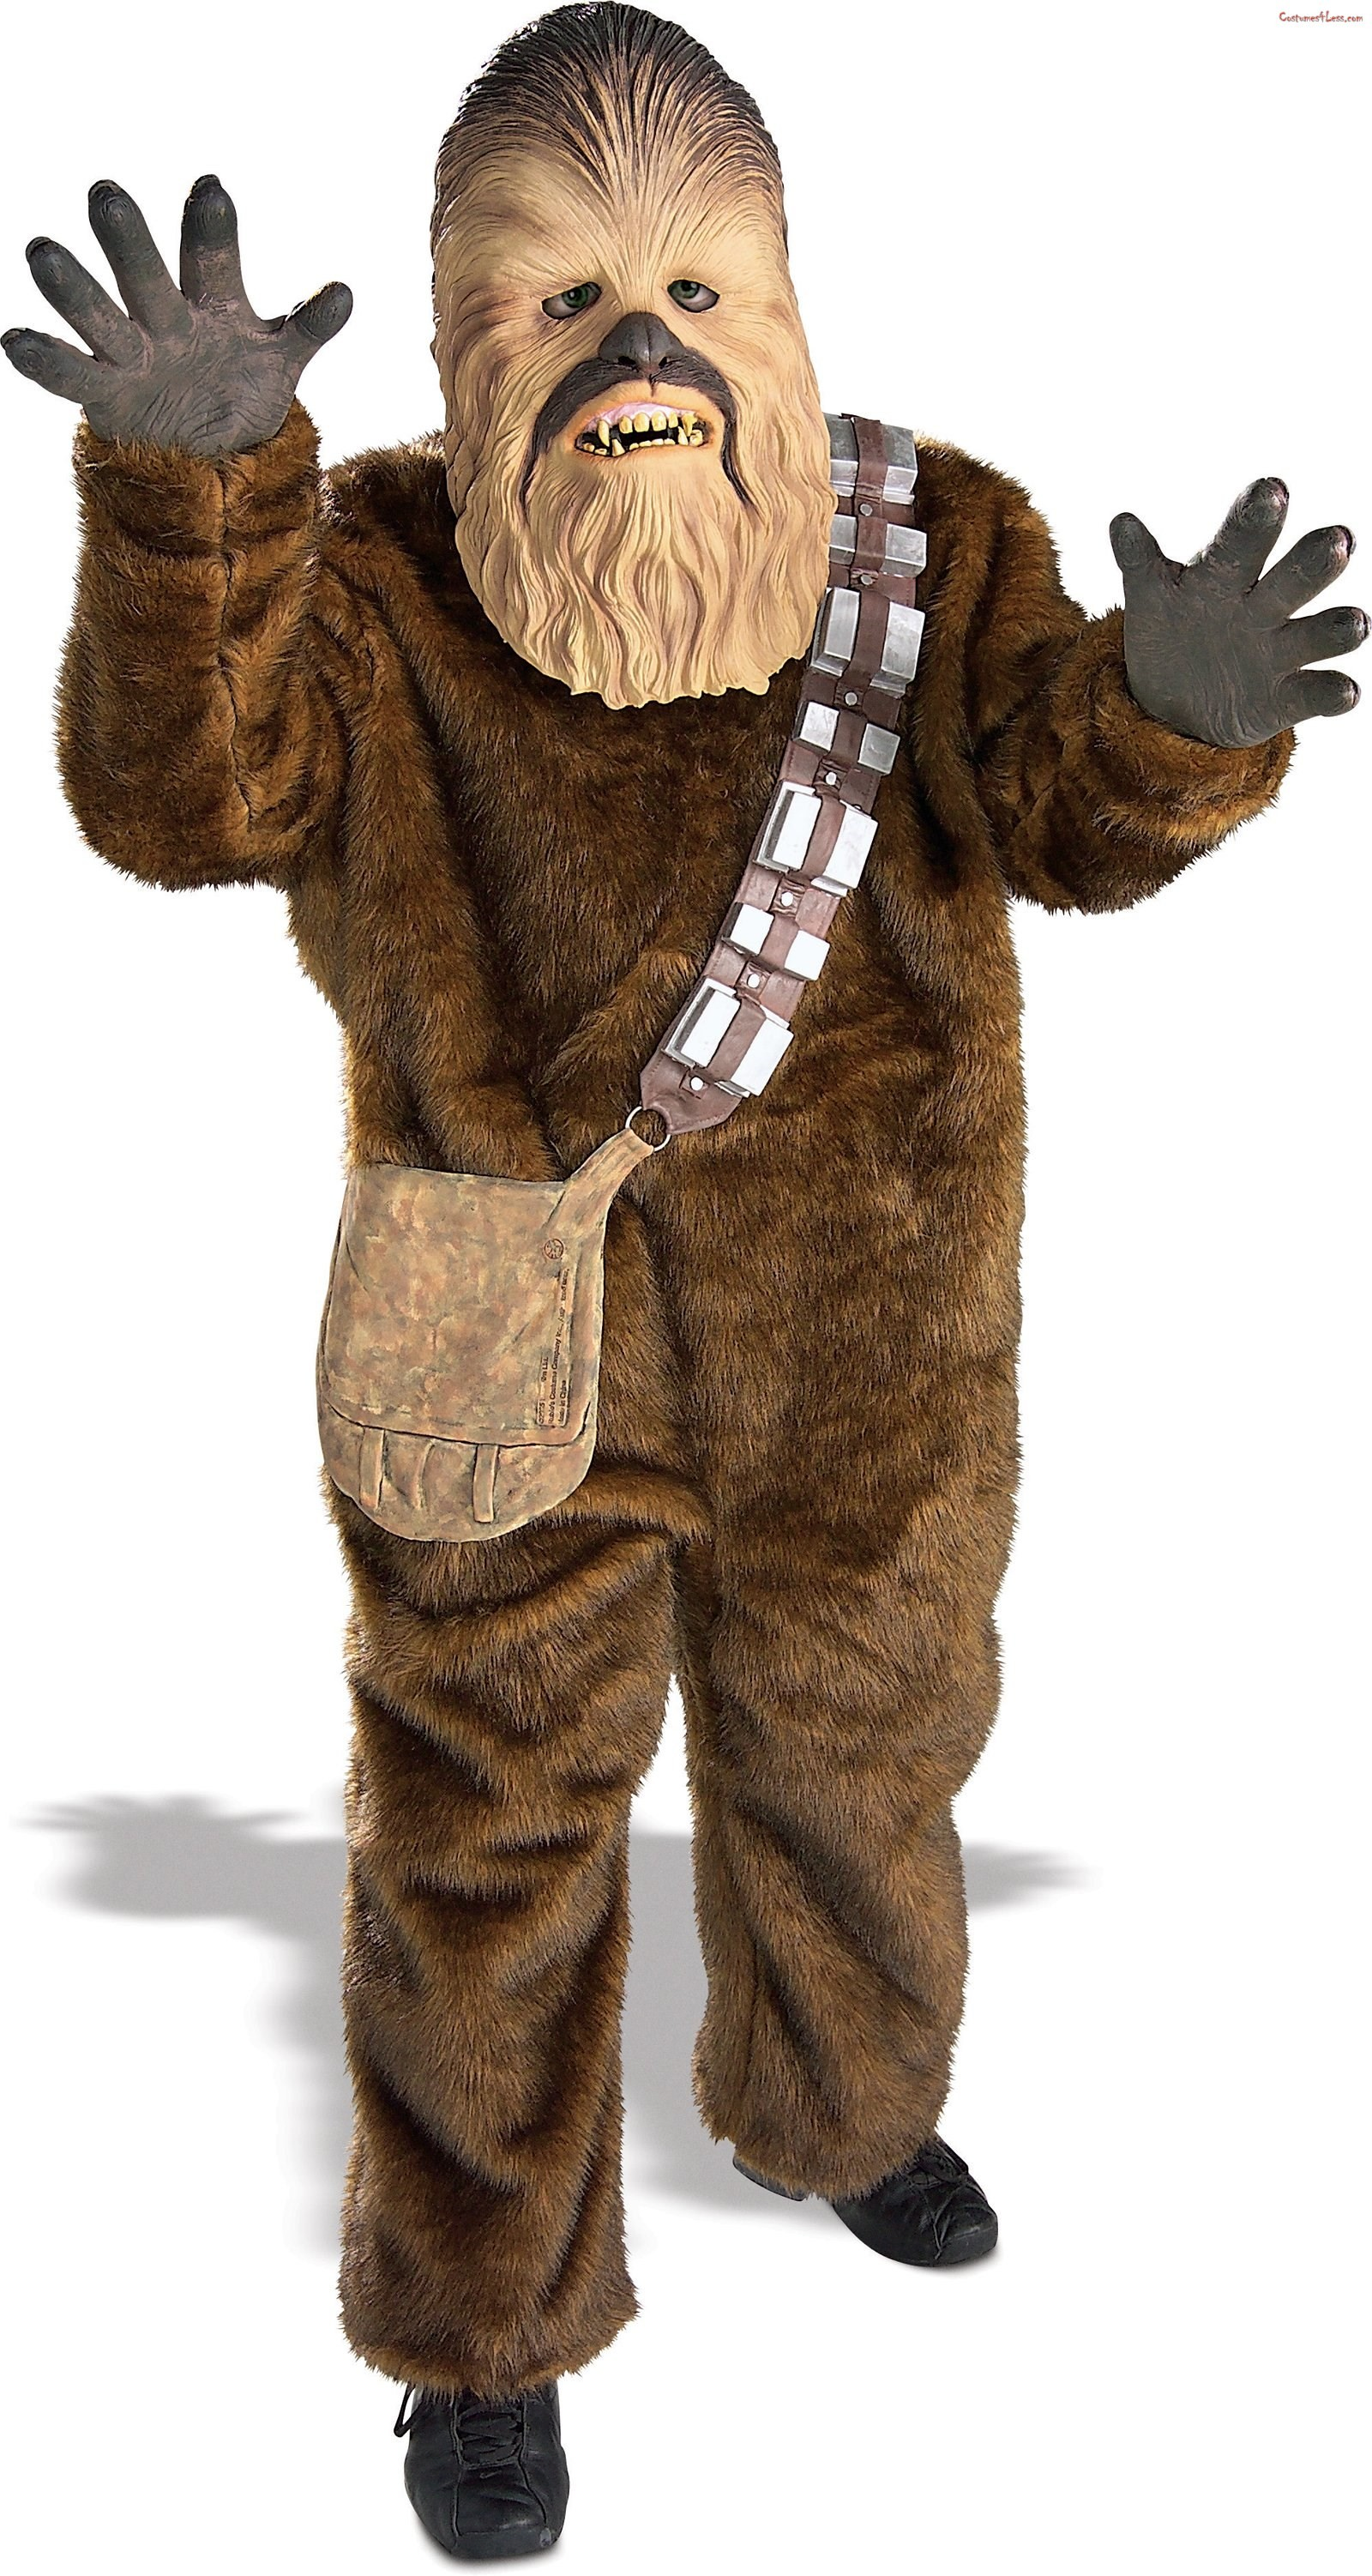 1600x3003  wallpaper horse tack, snout, star wars, chewbacca, costume